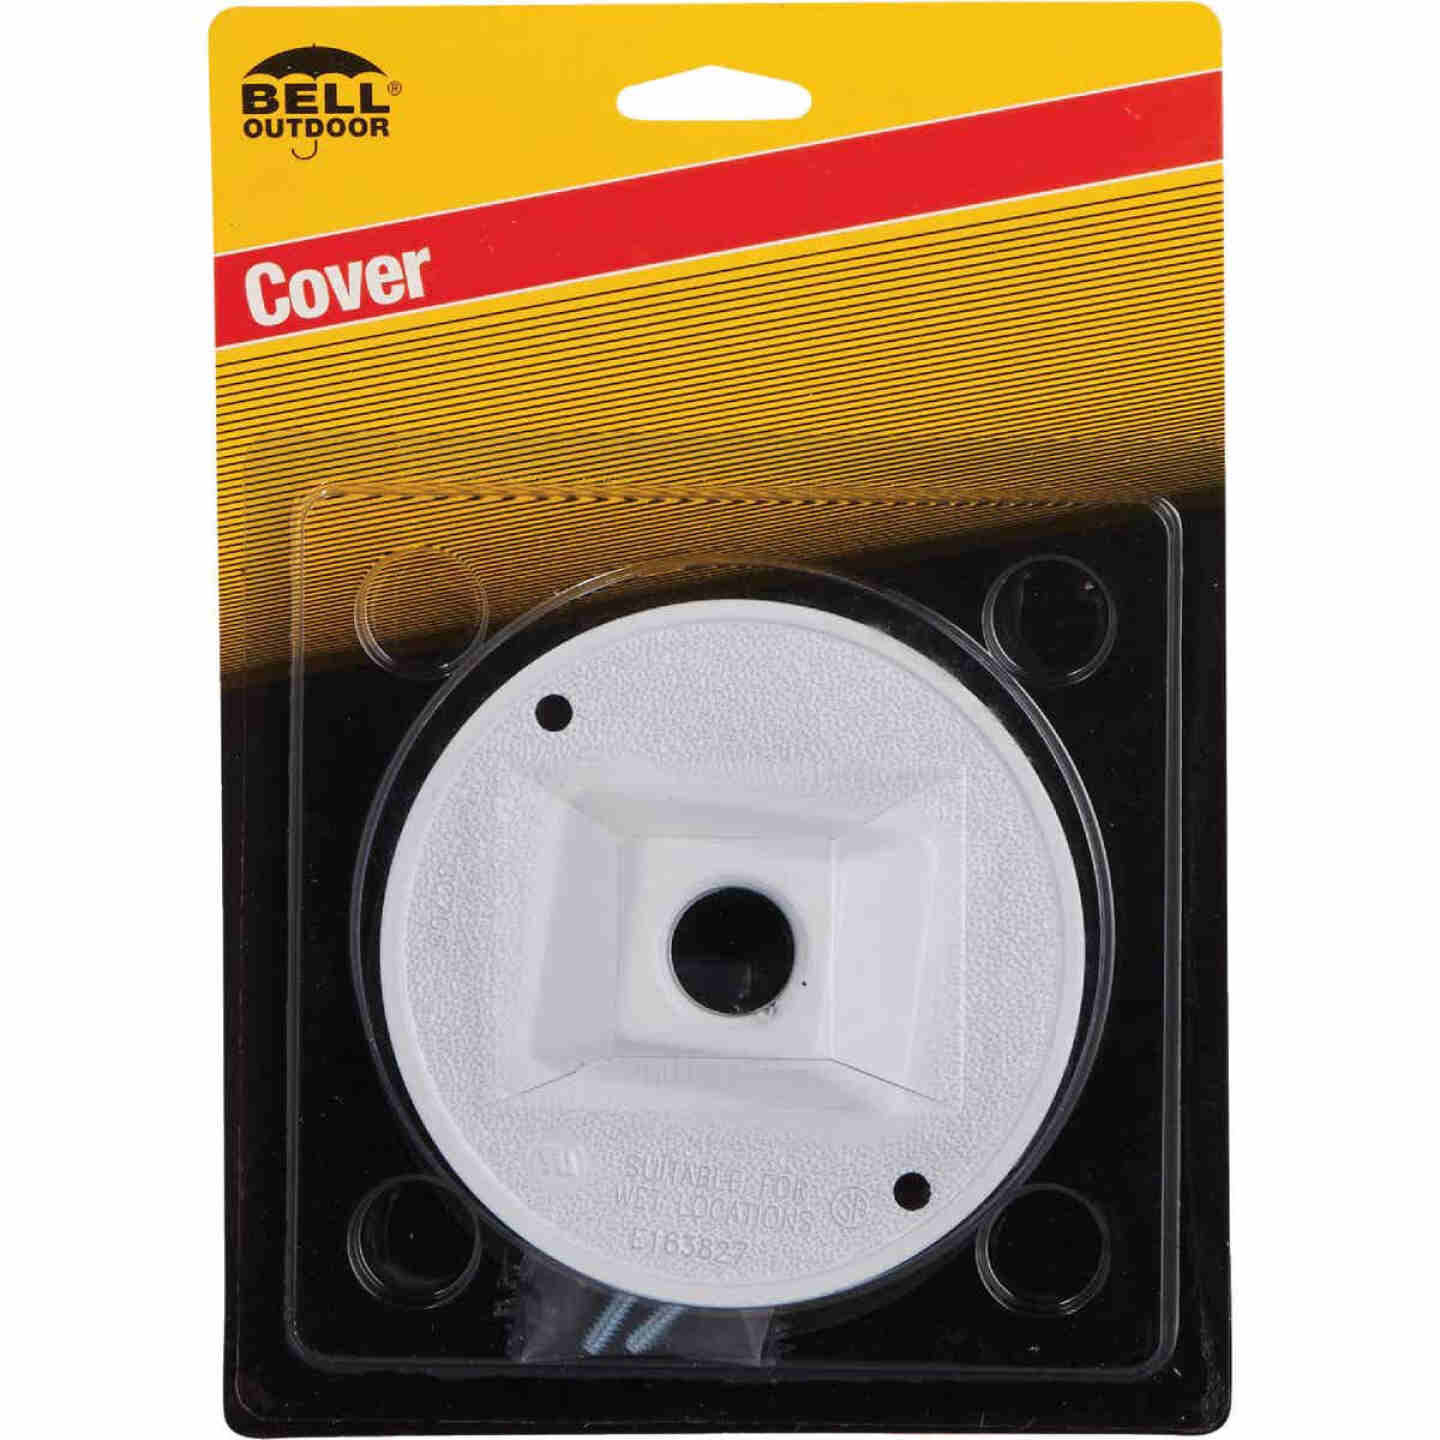 Hubbell 4 In. 1-Outlet 1/2 In. NPT White Zinc Weatherproof Electrical Cover Image 2